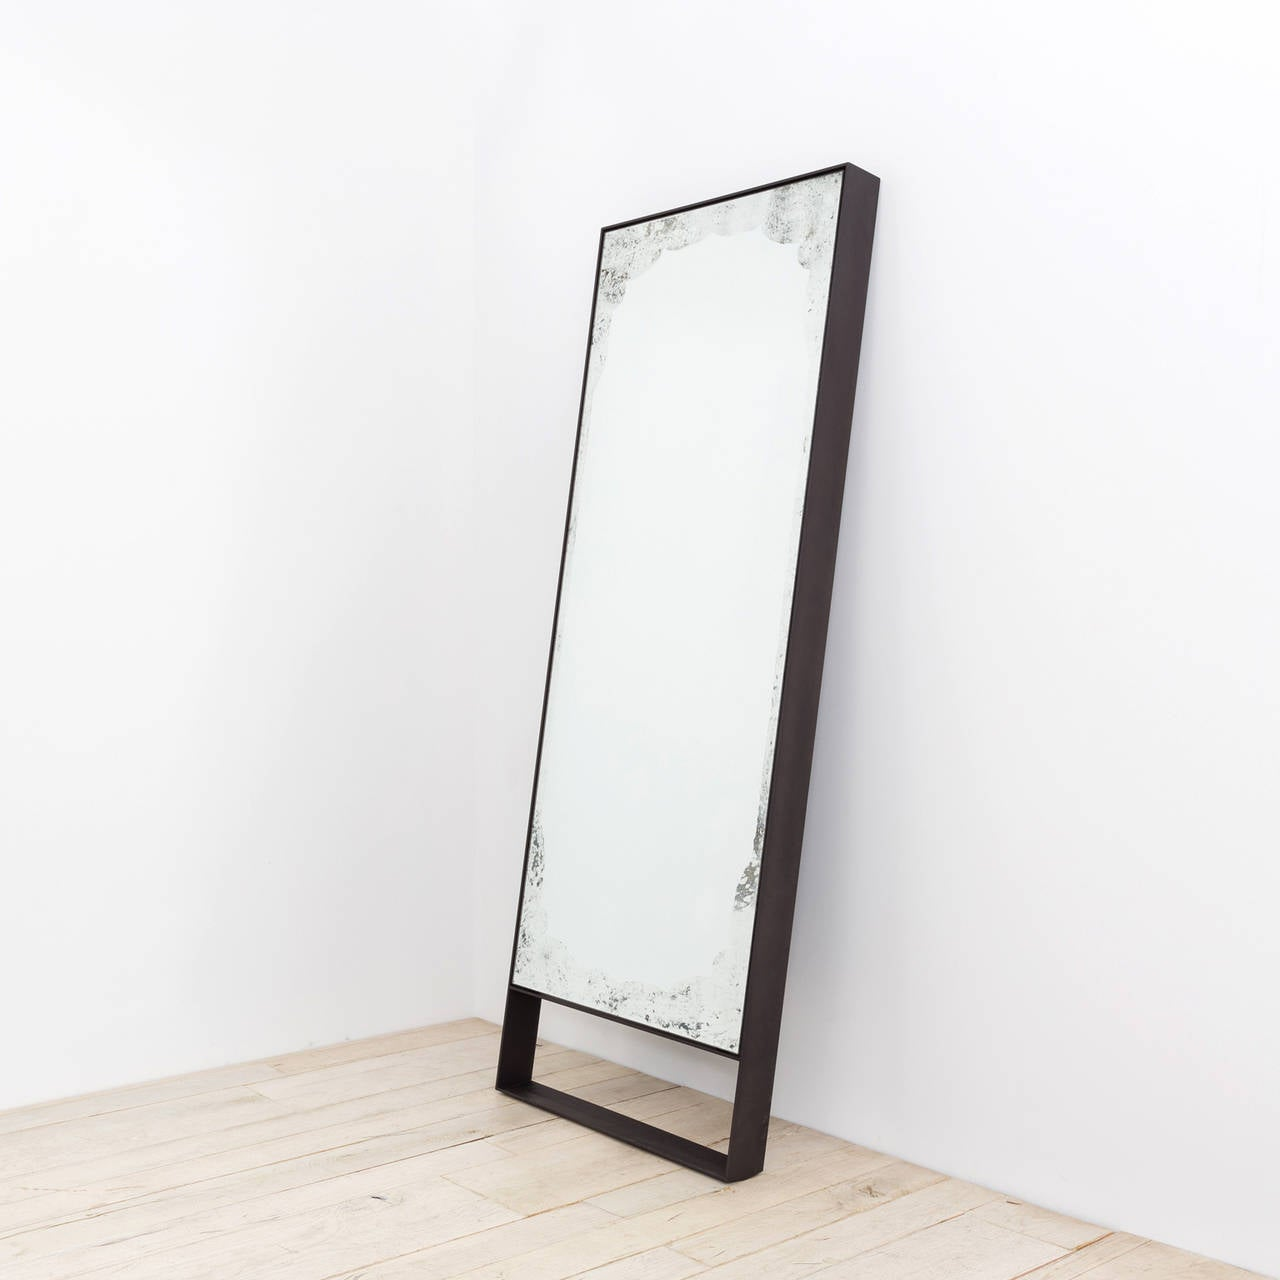 Antique mod mirror by uhuru design hand blackened steel for Black framed floor length mirror